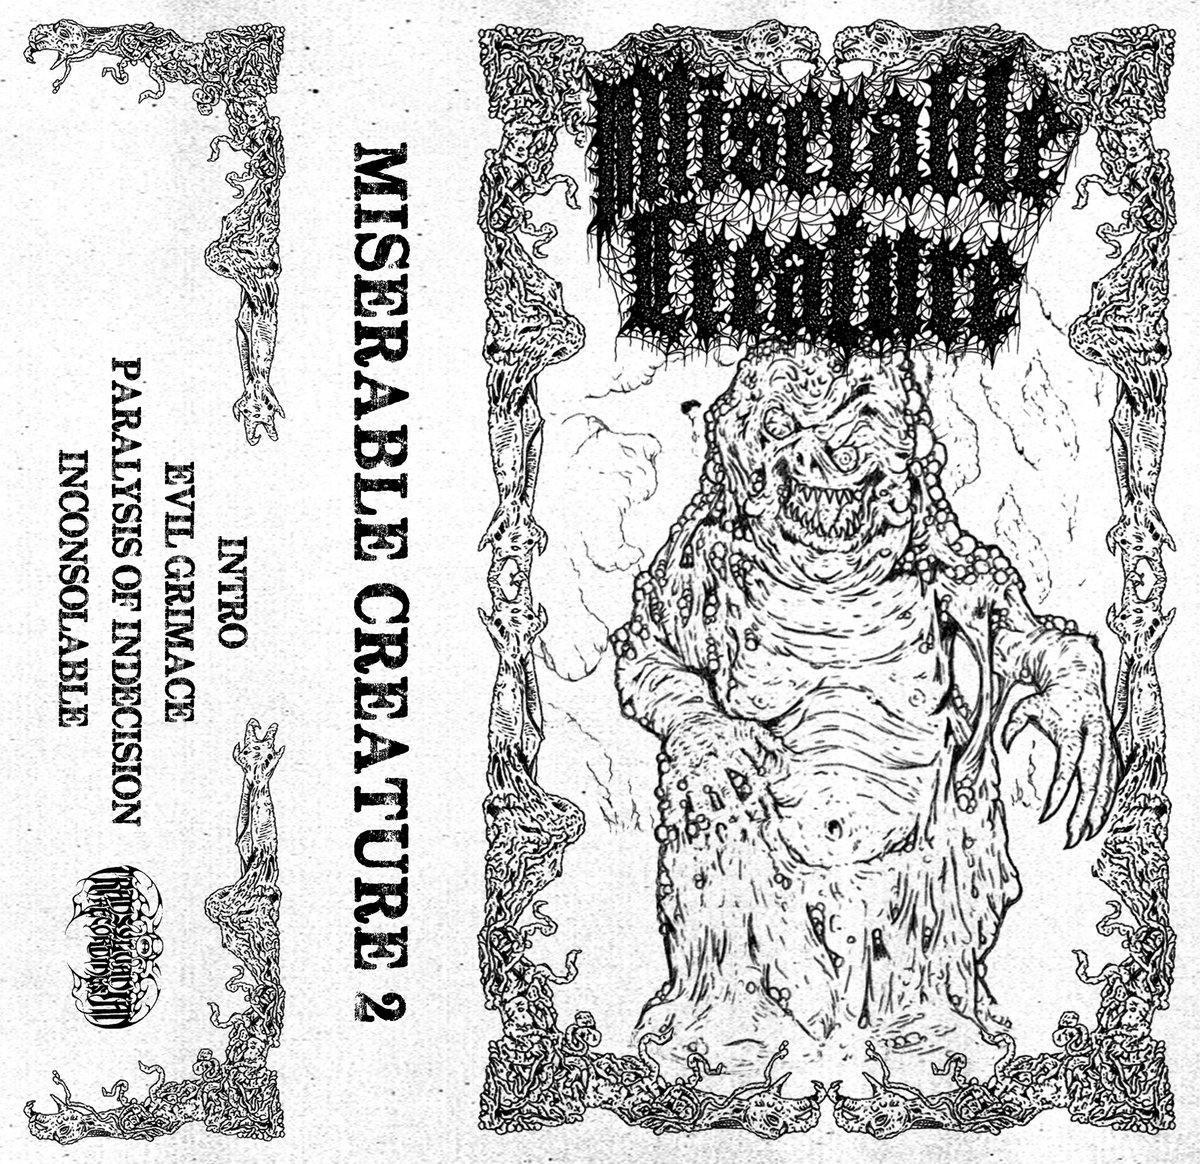 Miserable Creature - Miserable Creature 2 (2021)